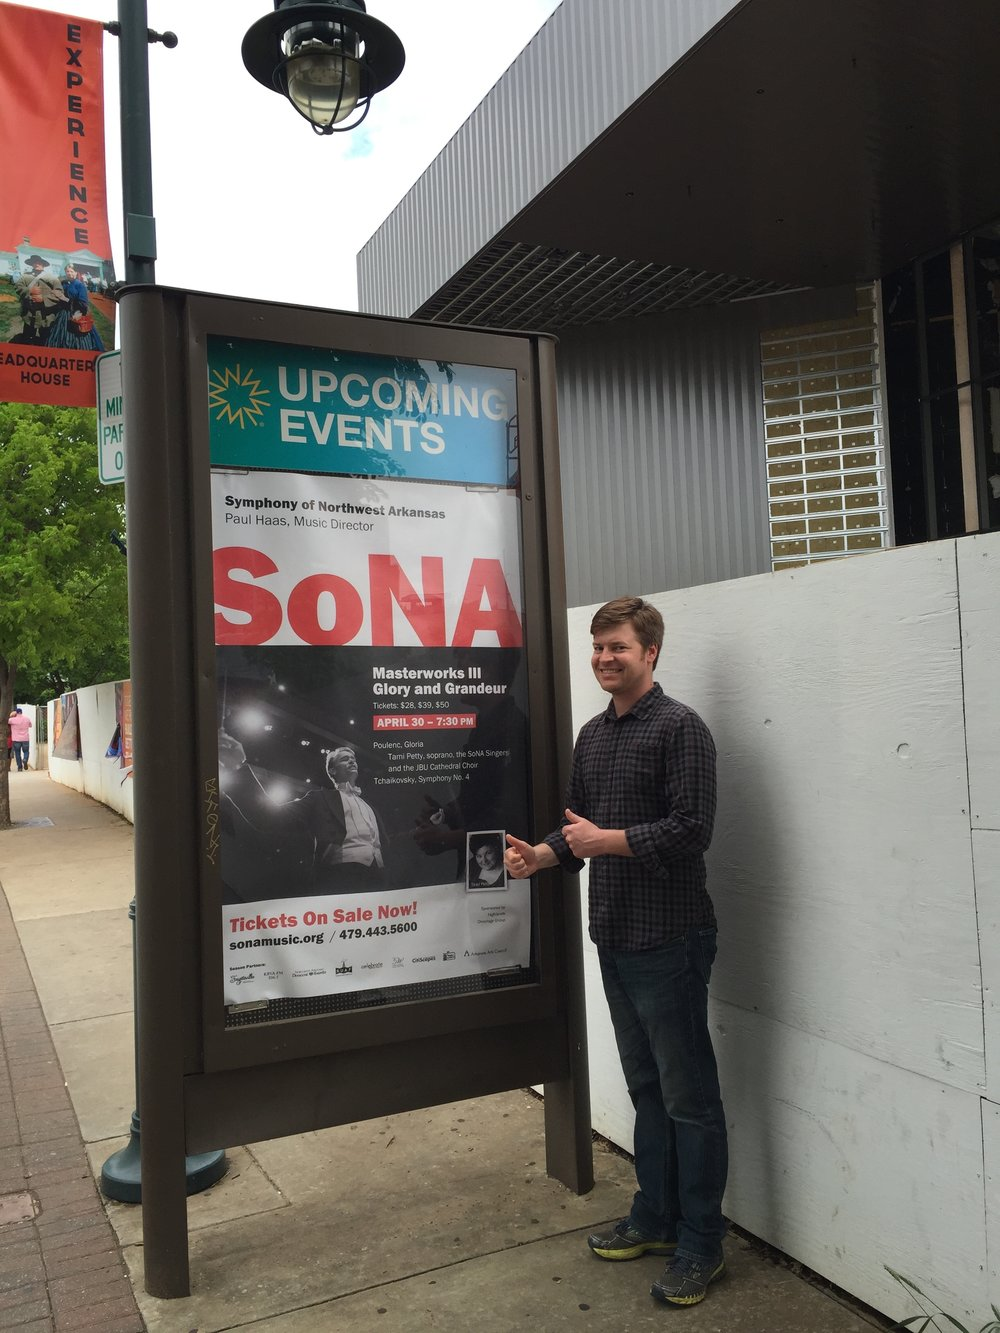 Nice add for SoNA in Fayetteville.